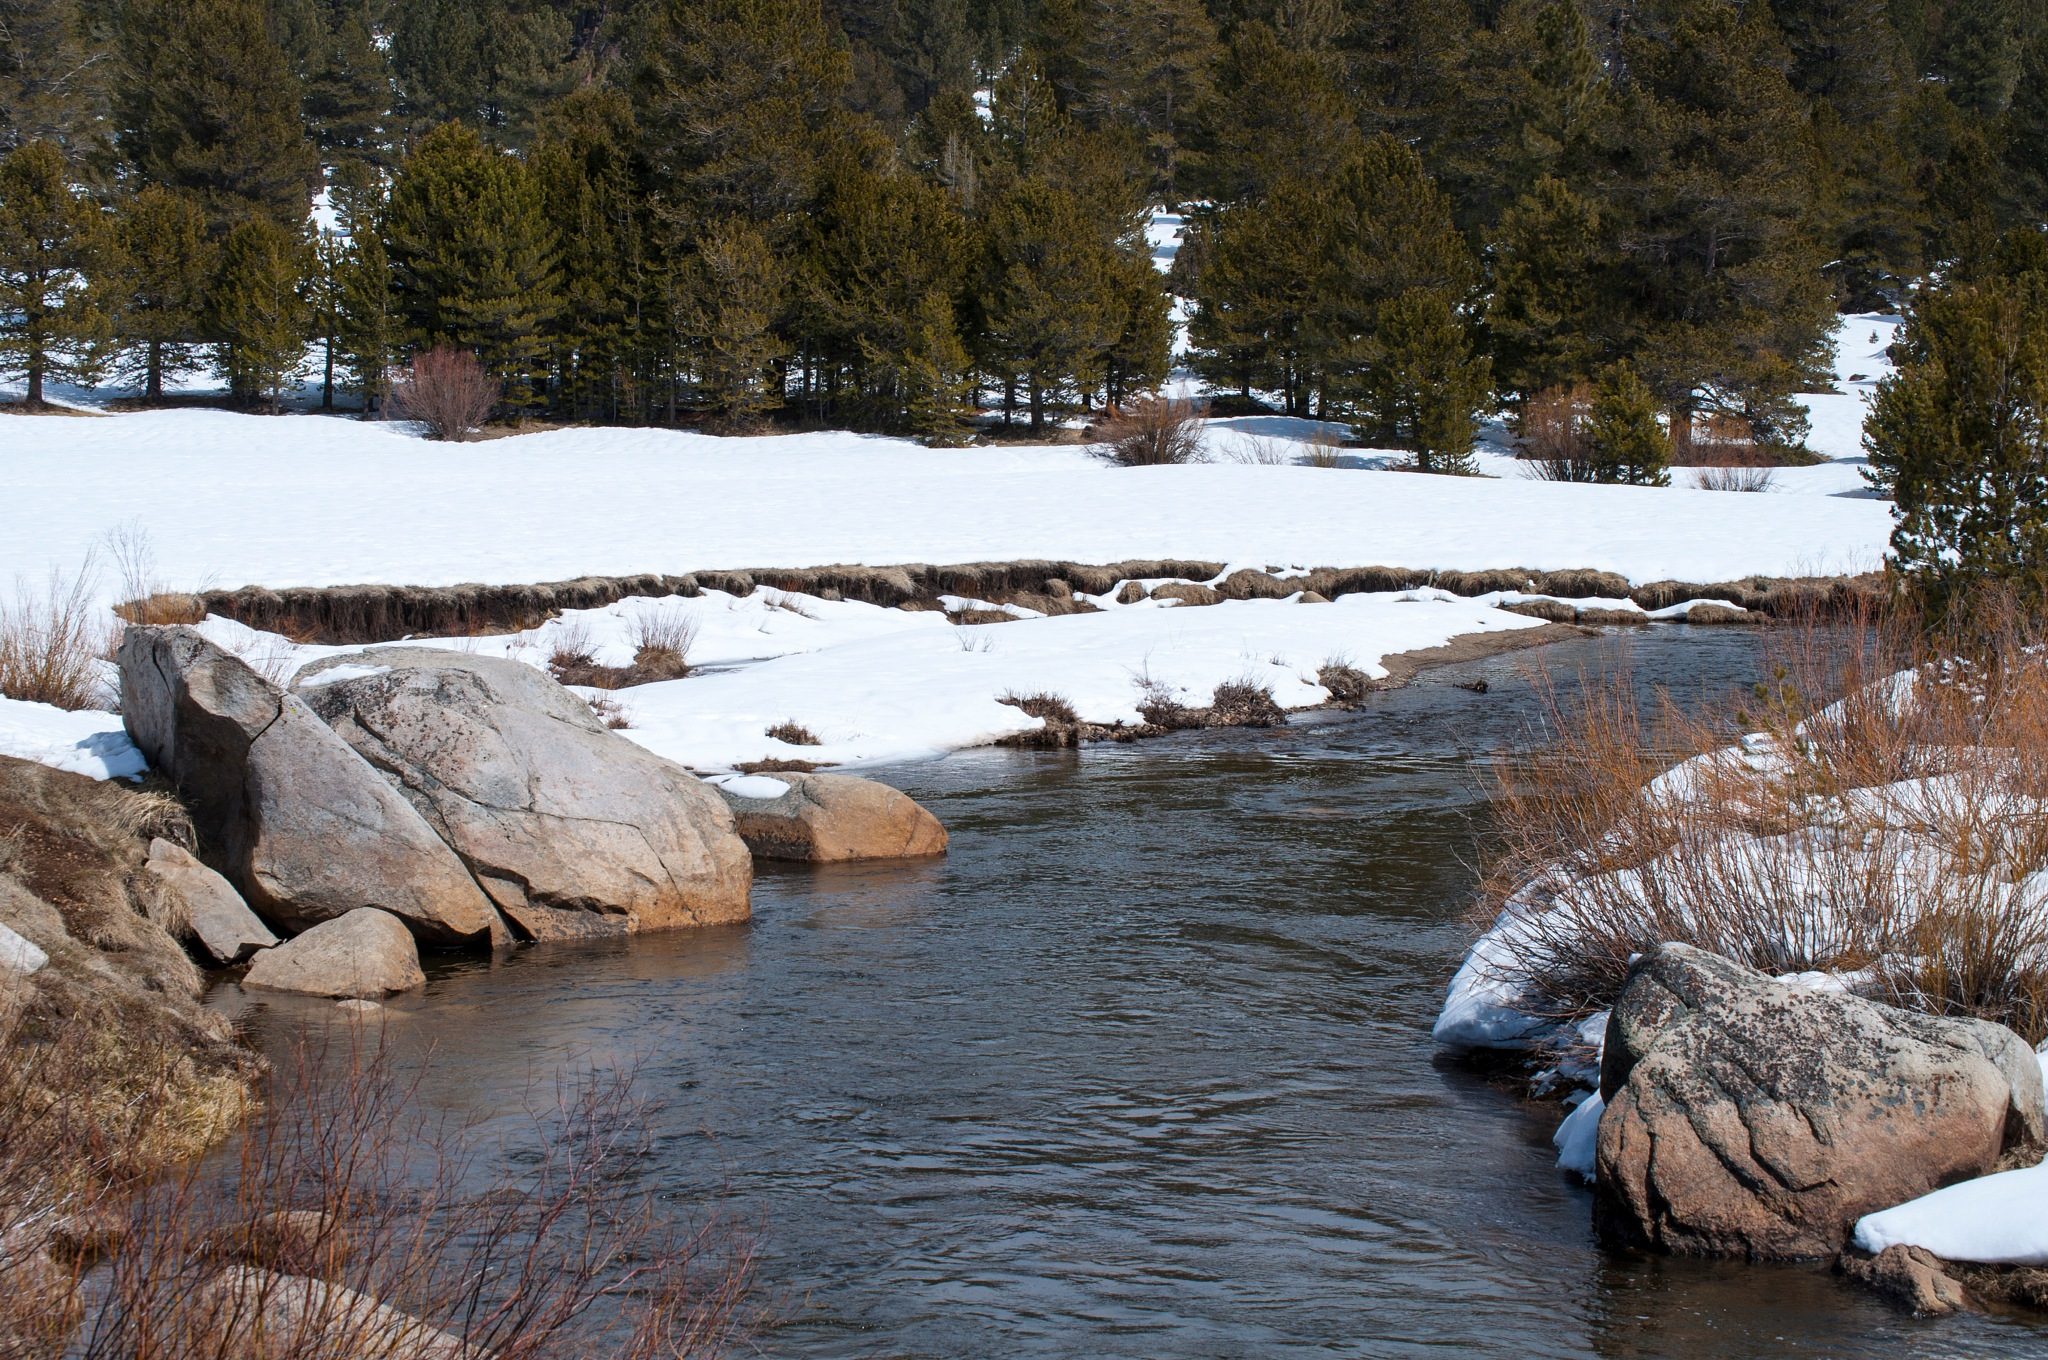 Carson River, west fork by Neal Lacroix